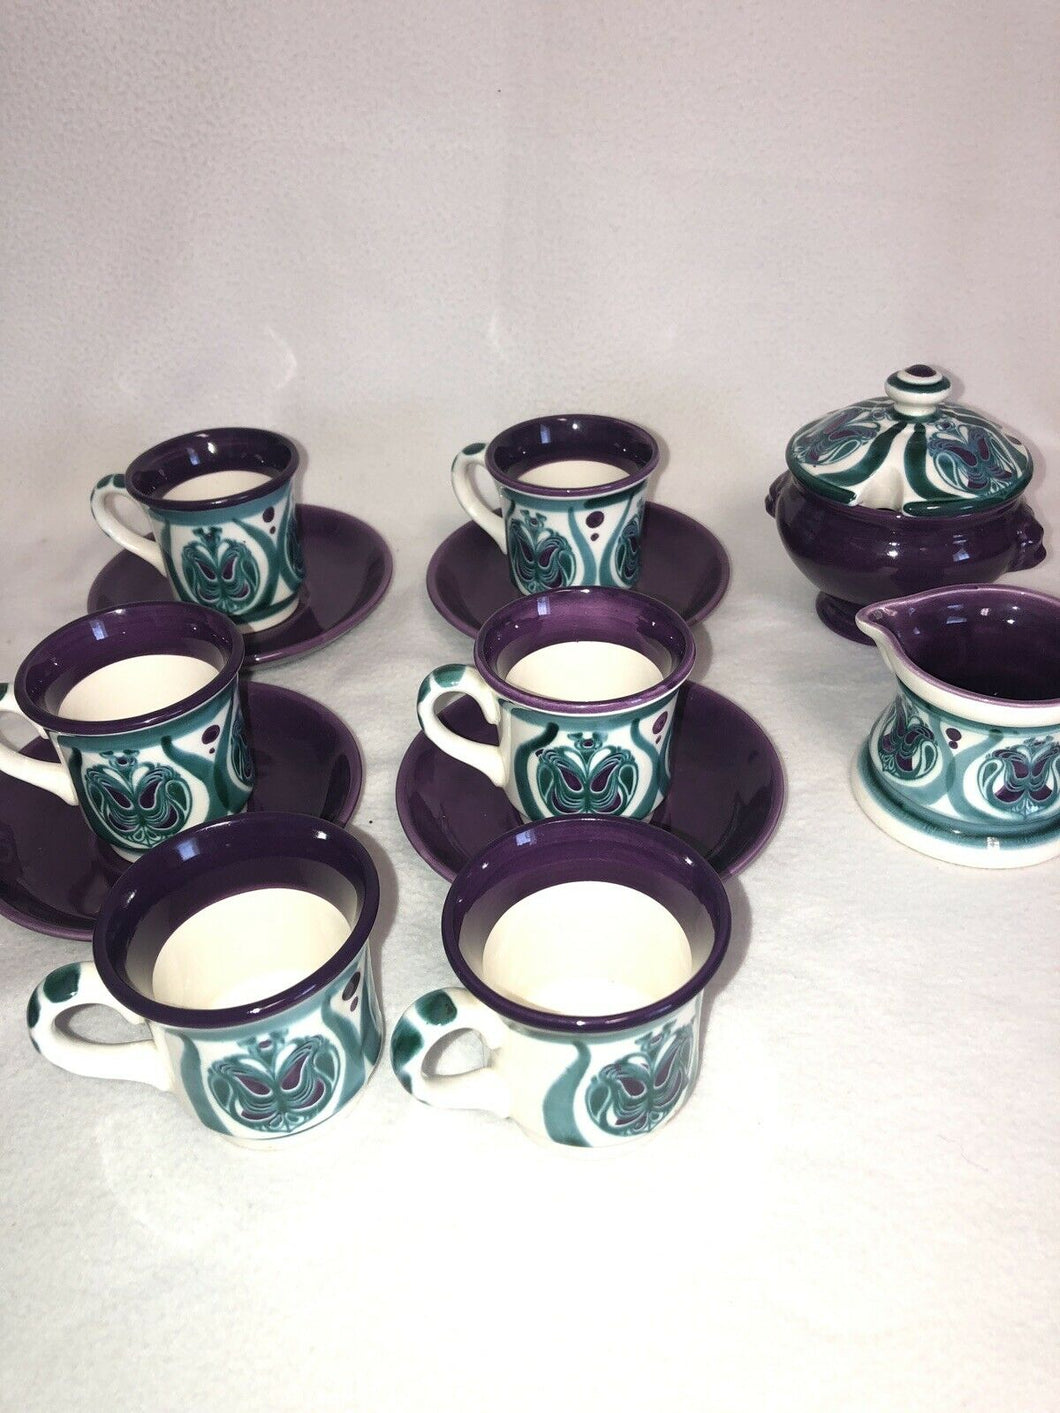 Rare Majolica Schramberg Ger. Violetta Cir 1915 Art Nouveau Mixed Lot 13 Pieces